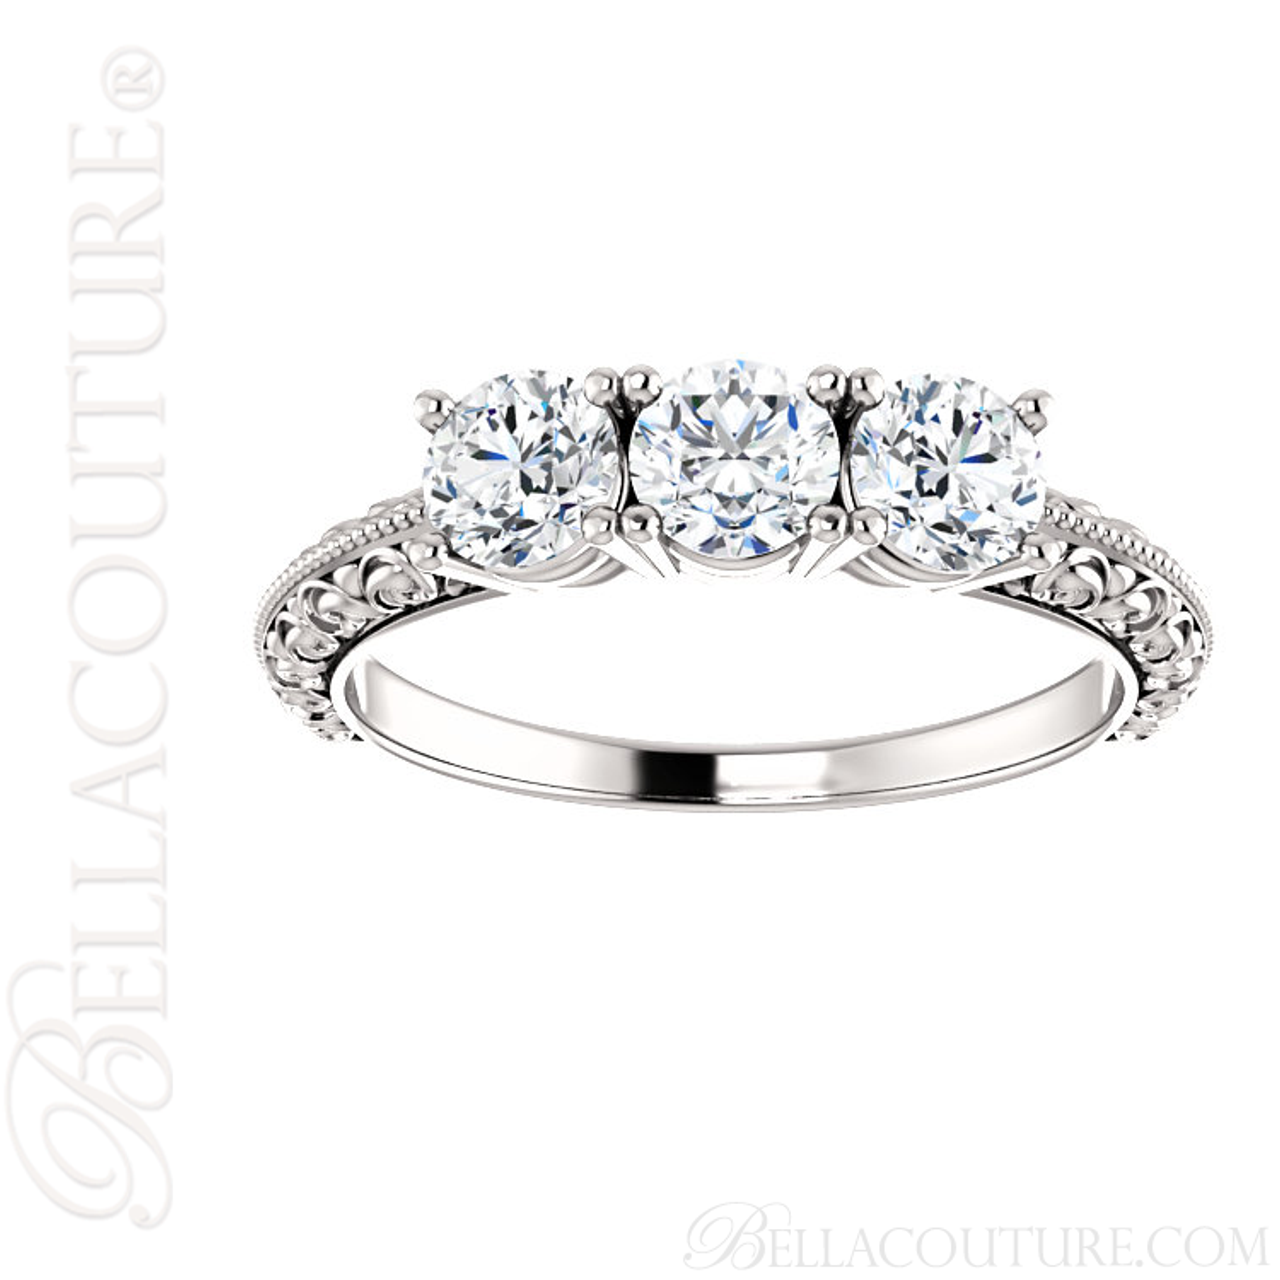 pxbnrnz ring stone promise three engagement trellis diamond wedding